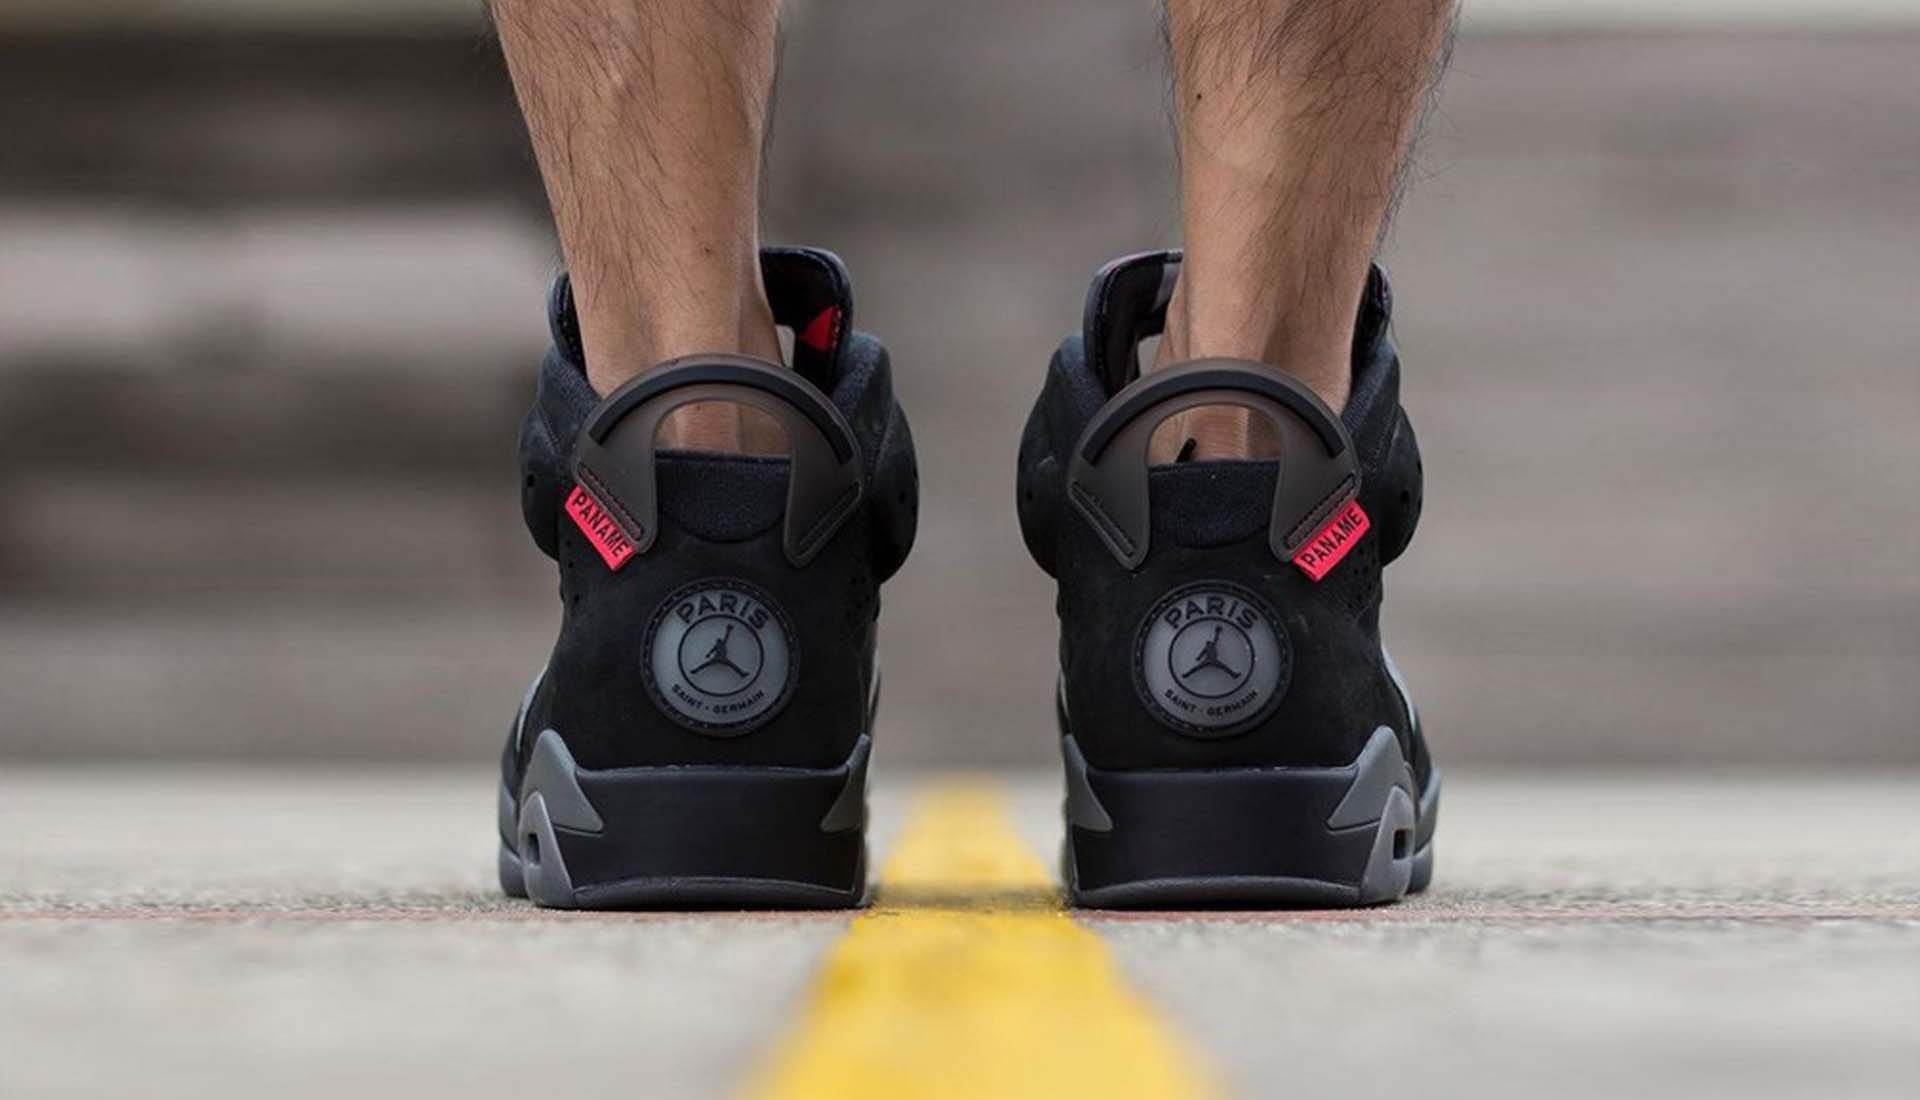 reputable site 18c12 9b07b Closer Look at the Paris Saint-Germain x Air Jordan 6 ...